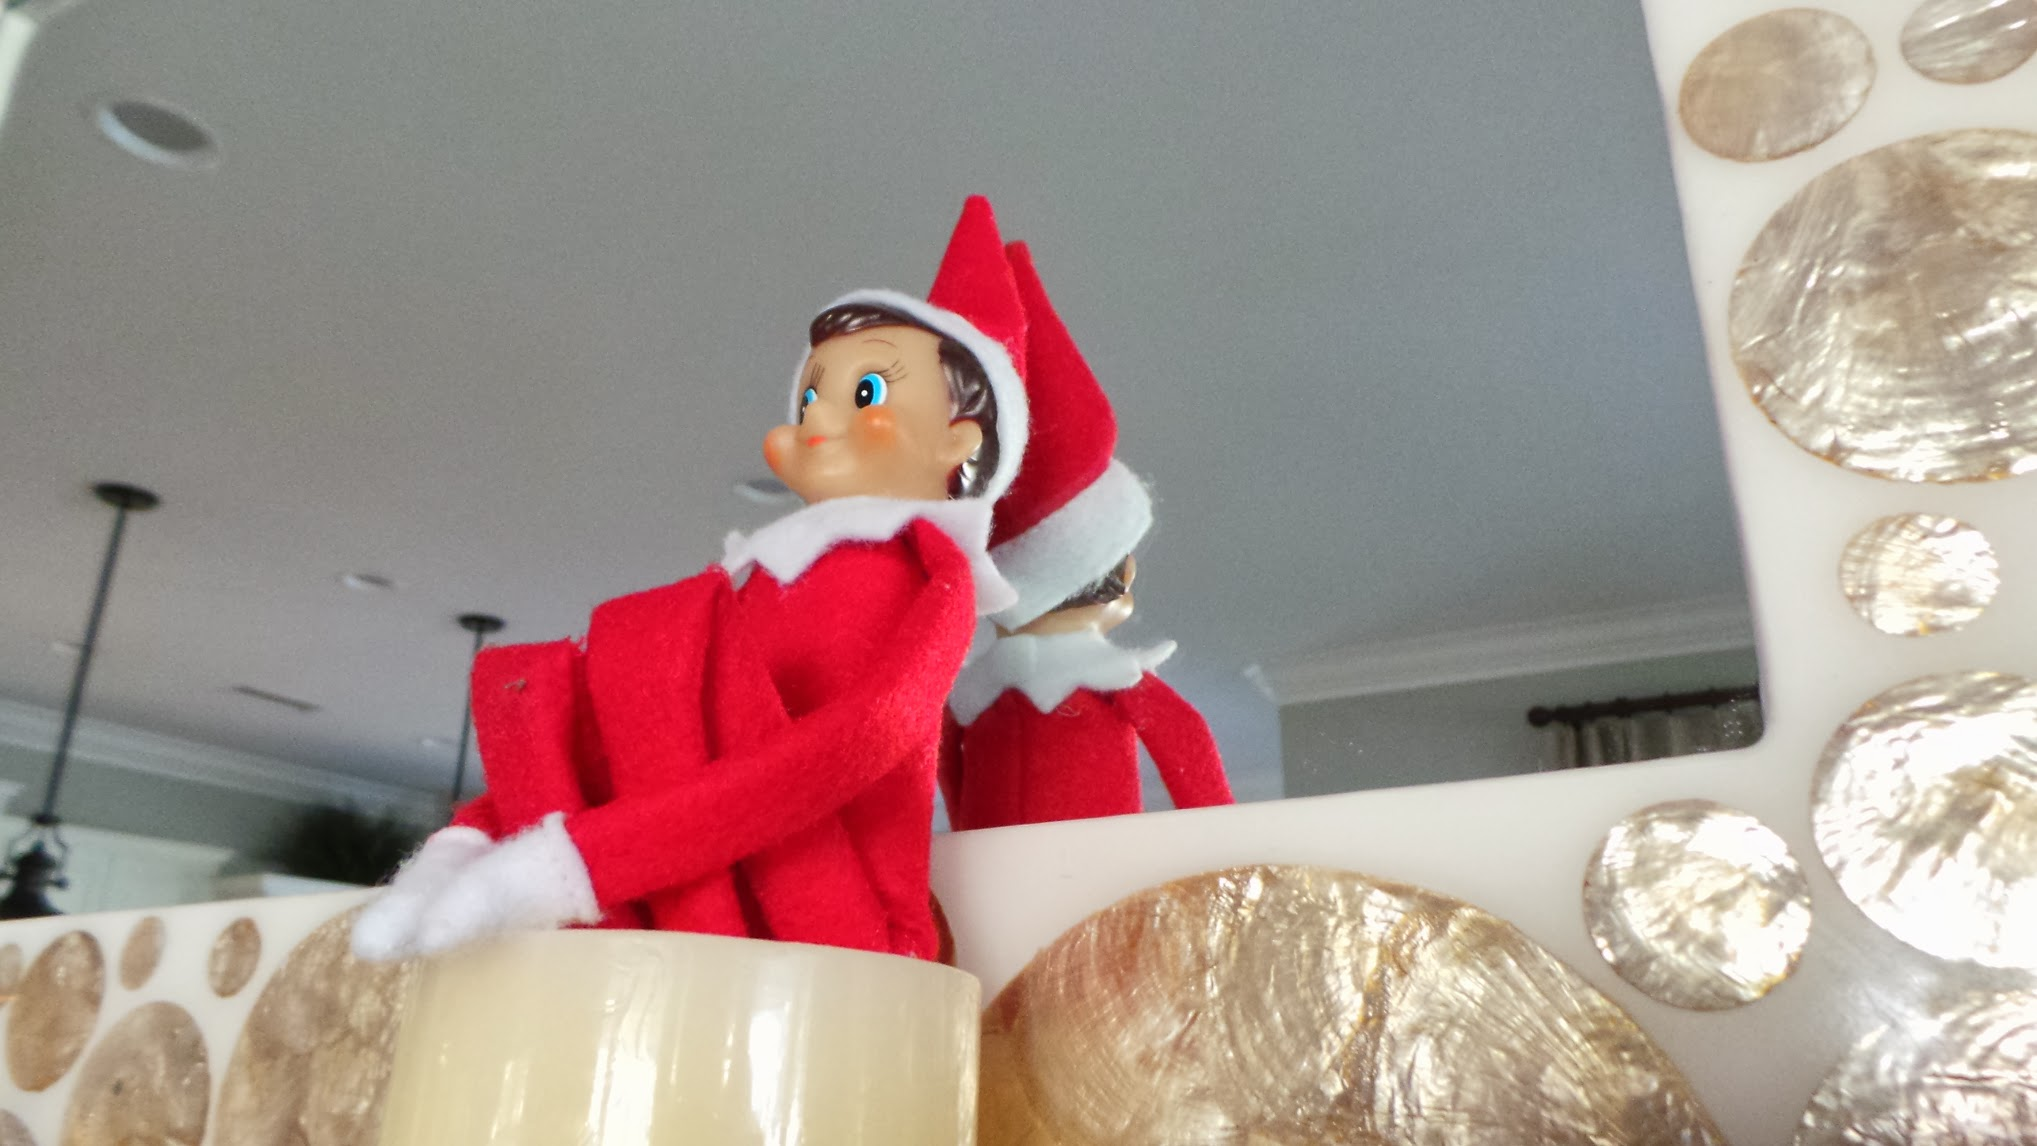 Elf on the Shelf names make the holiday tradition bond deeper with children. Pick one that resonates with your family with this list of over 50 names!